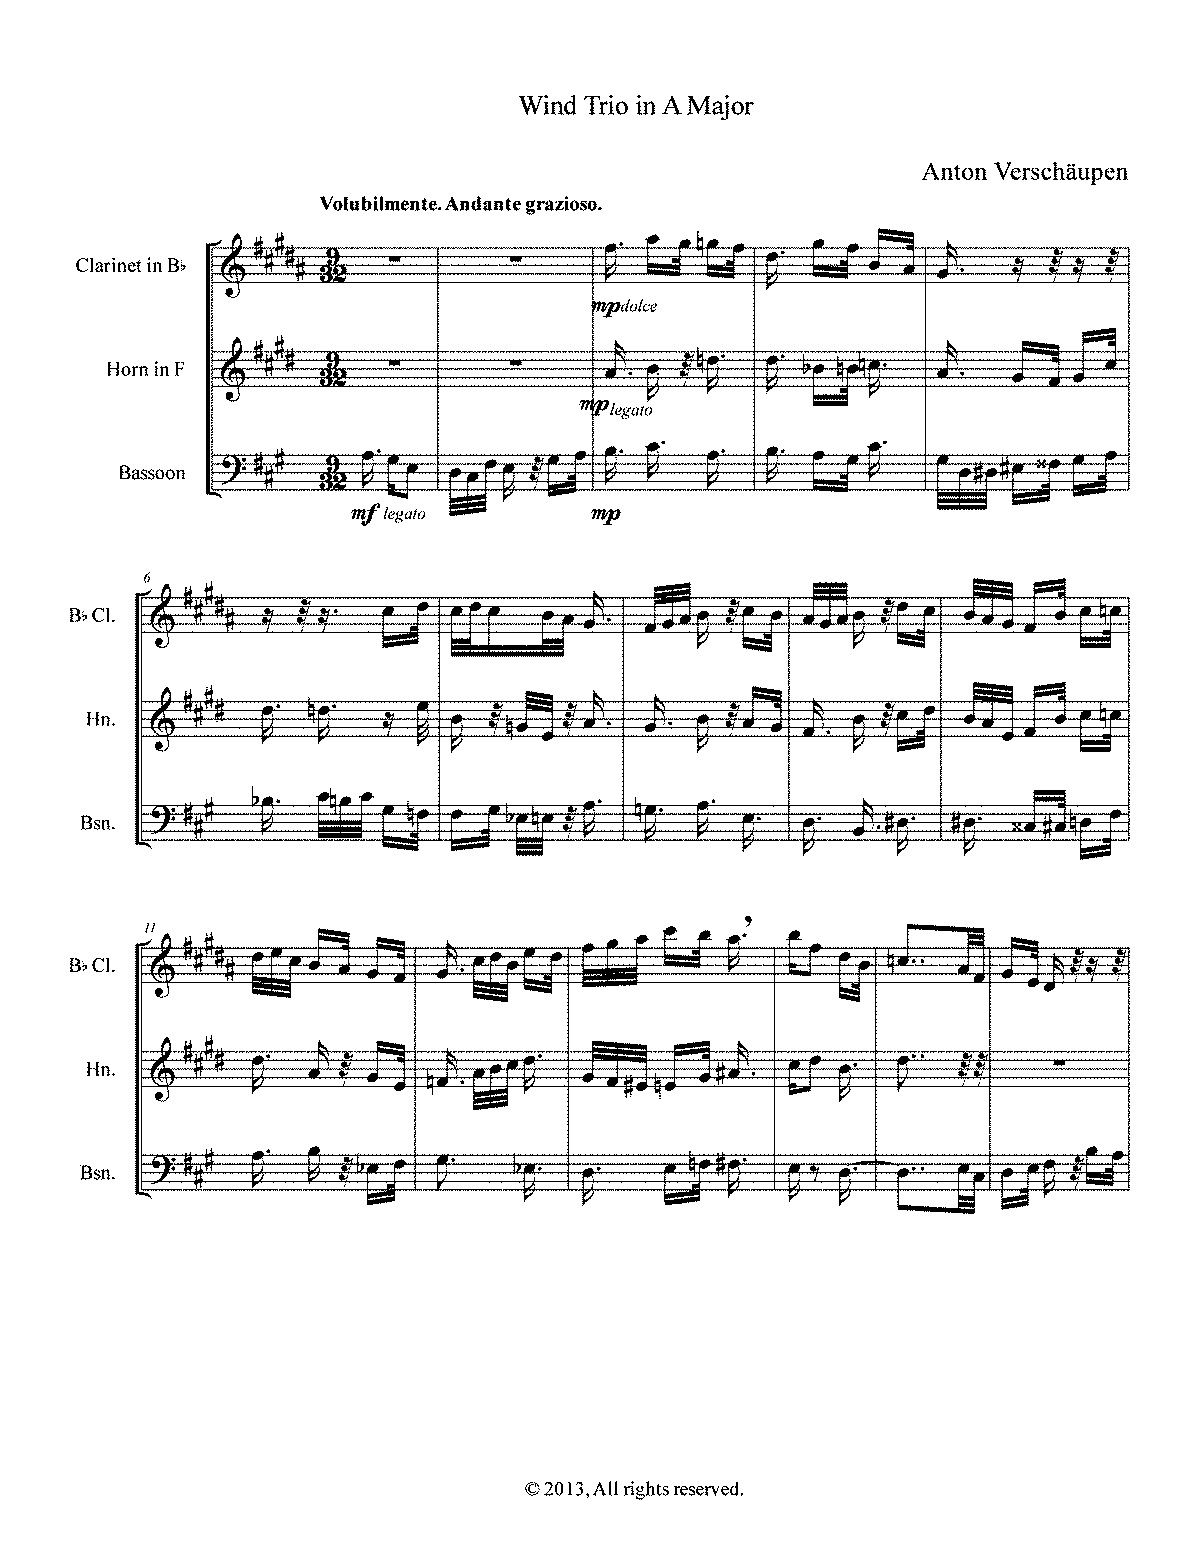 PMLP433918-Wind Trio in A Major by Anton Verschäupen.pdf